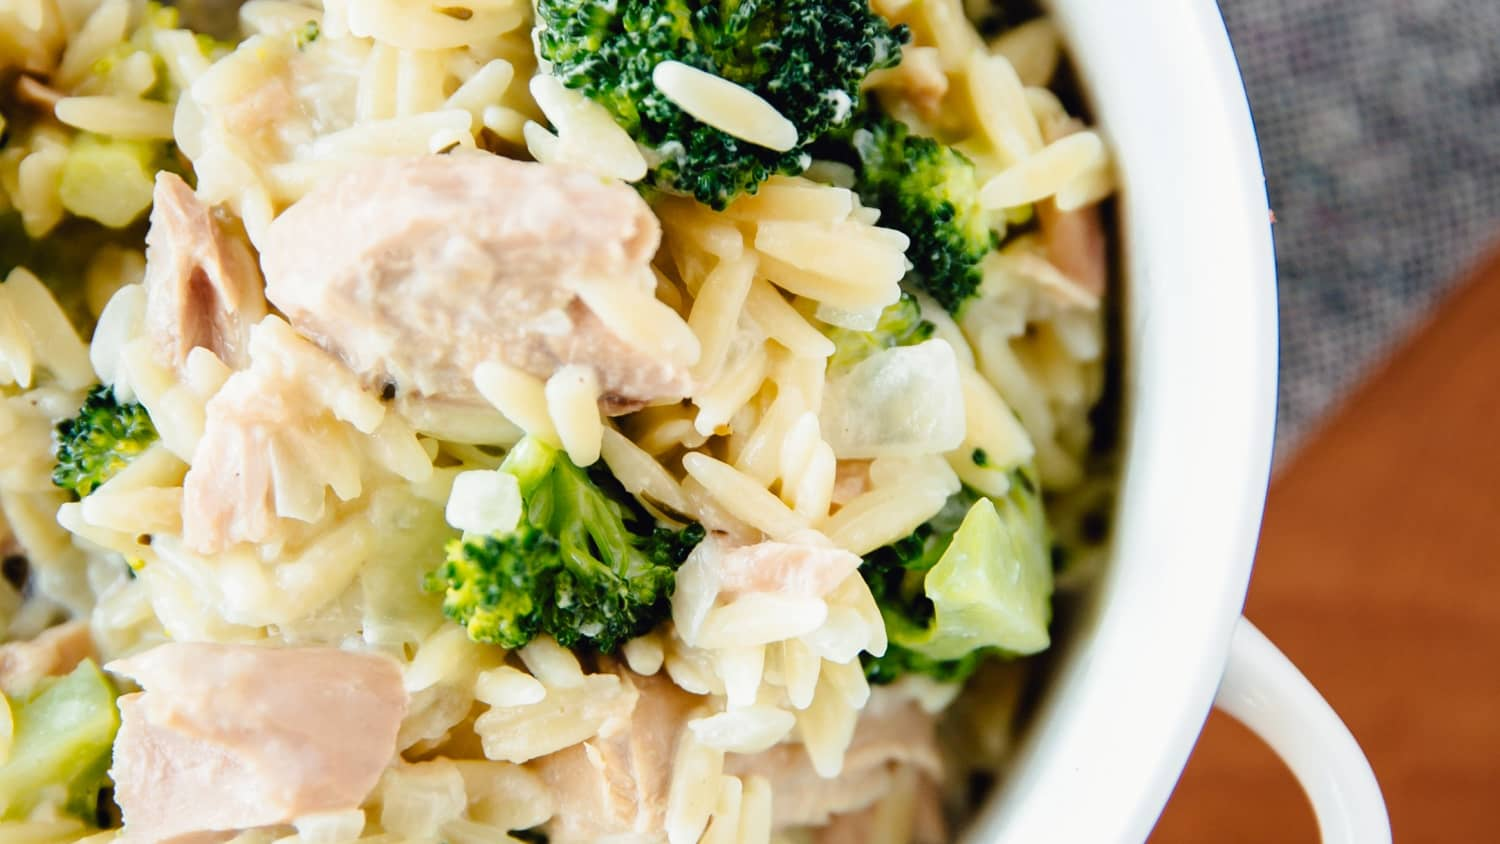 Stovetop Tuna Orzo Casserole with Broccoli